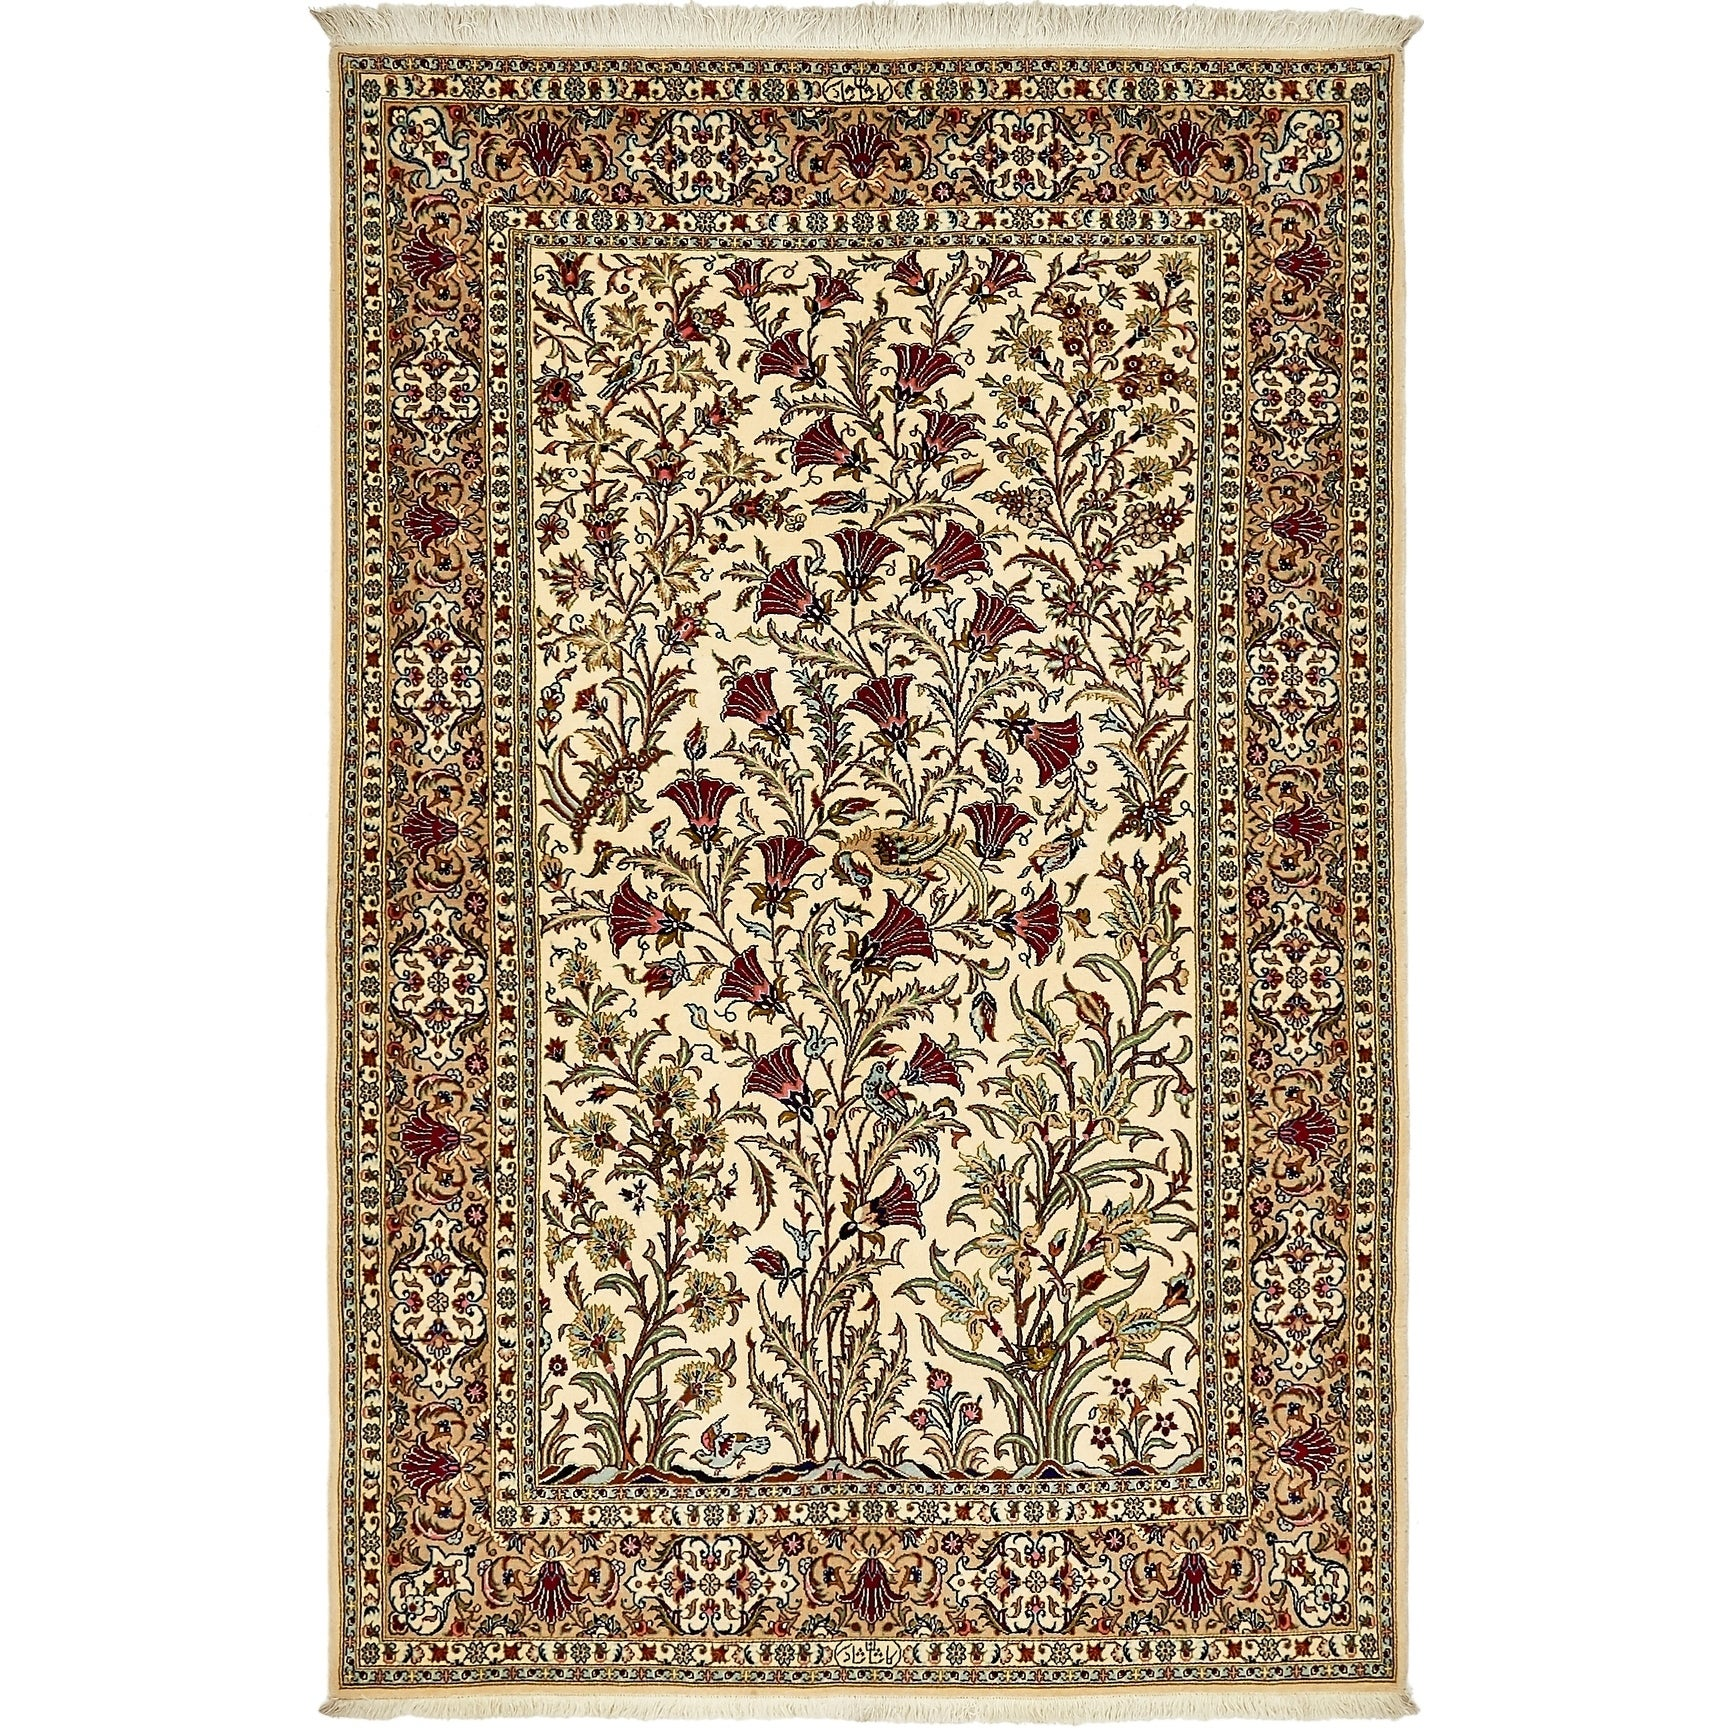 Hand Knotted Kashan Silk & Wool Area Rug - 4 9 x 7 2 (Cream - 4 9 x 7 2)